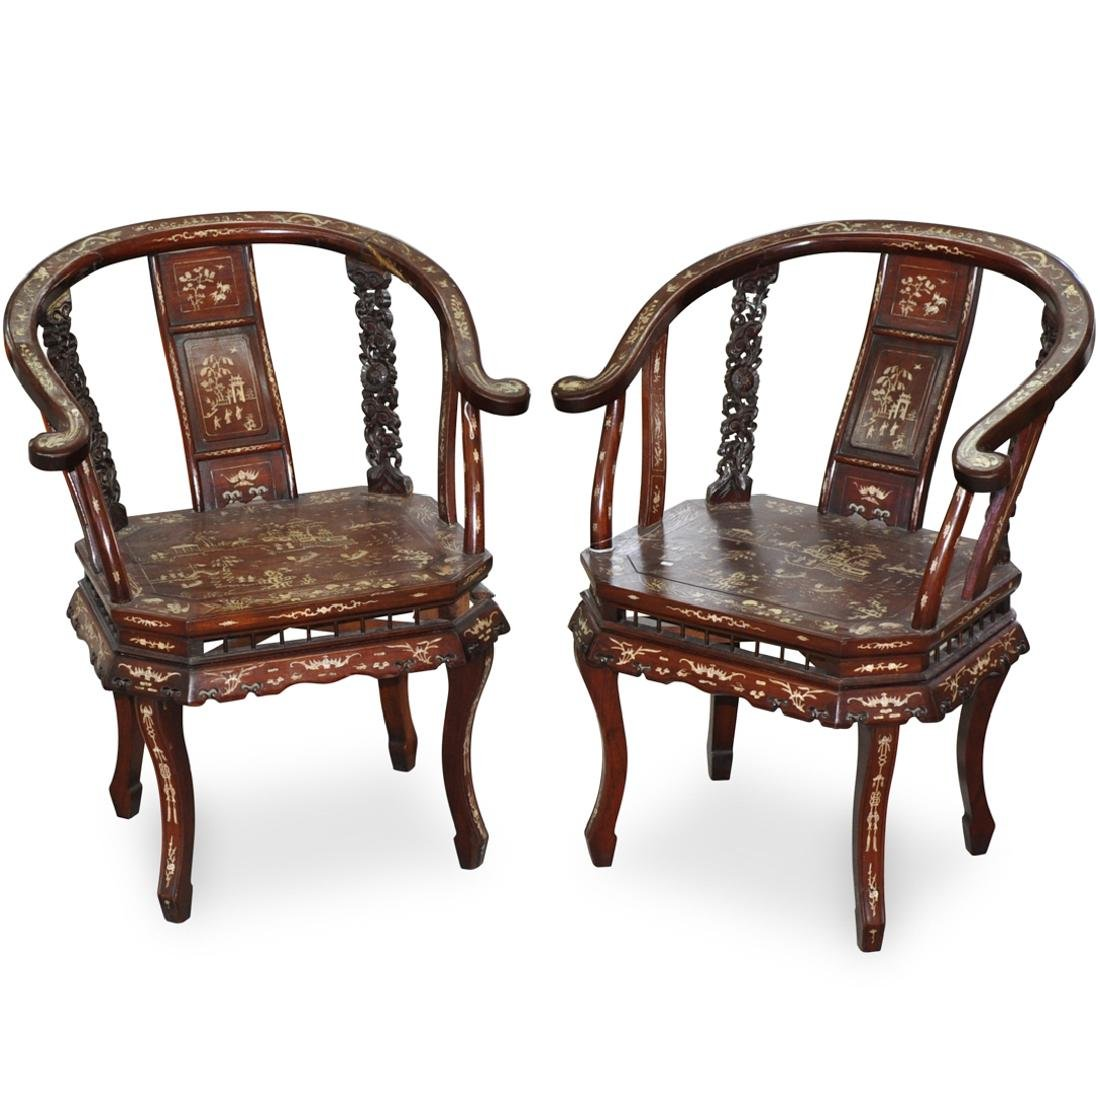 Pair of Chinese Carved Hardwood and Bone Inlay